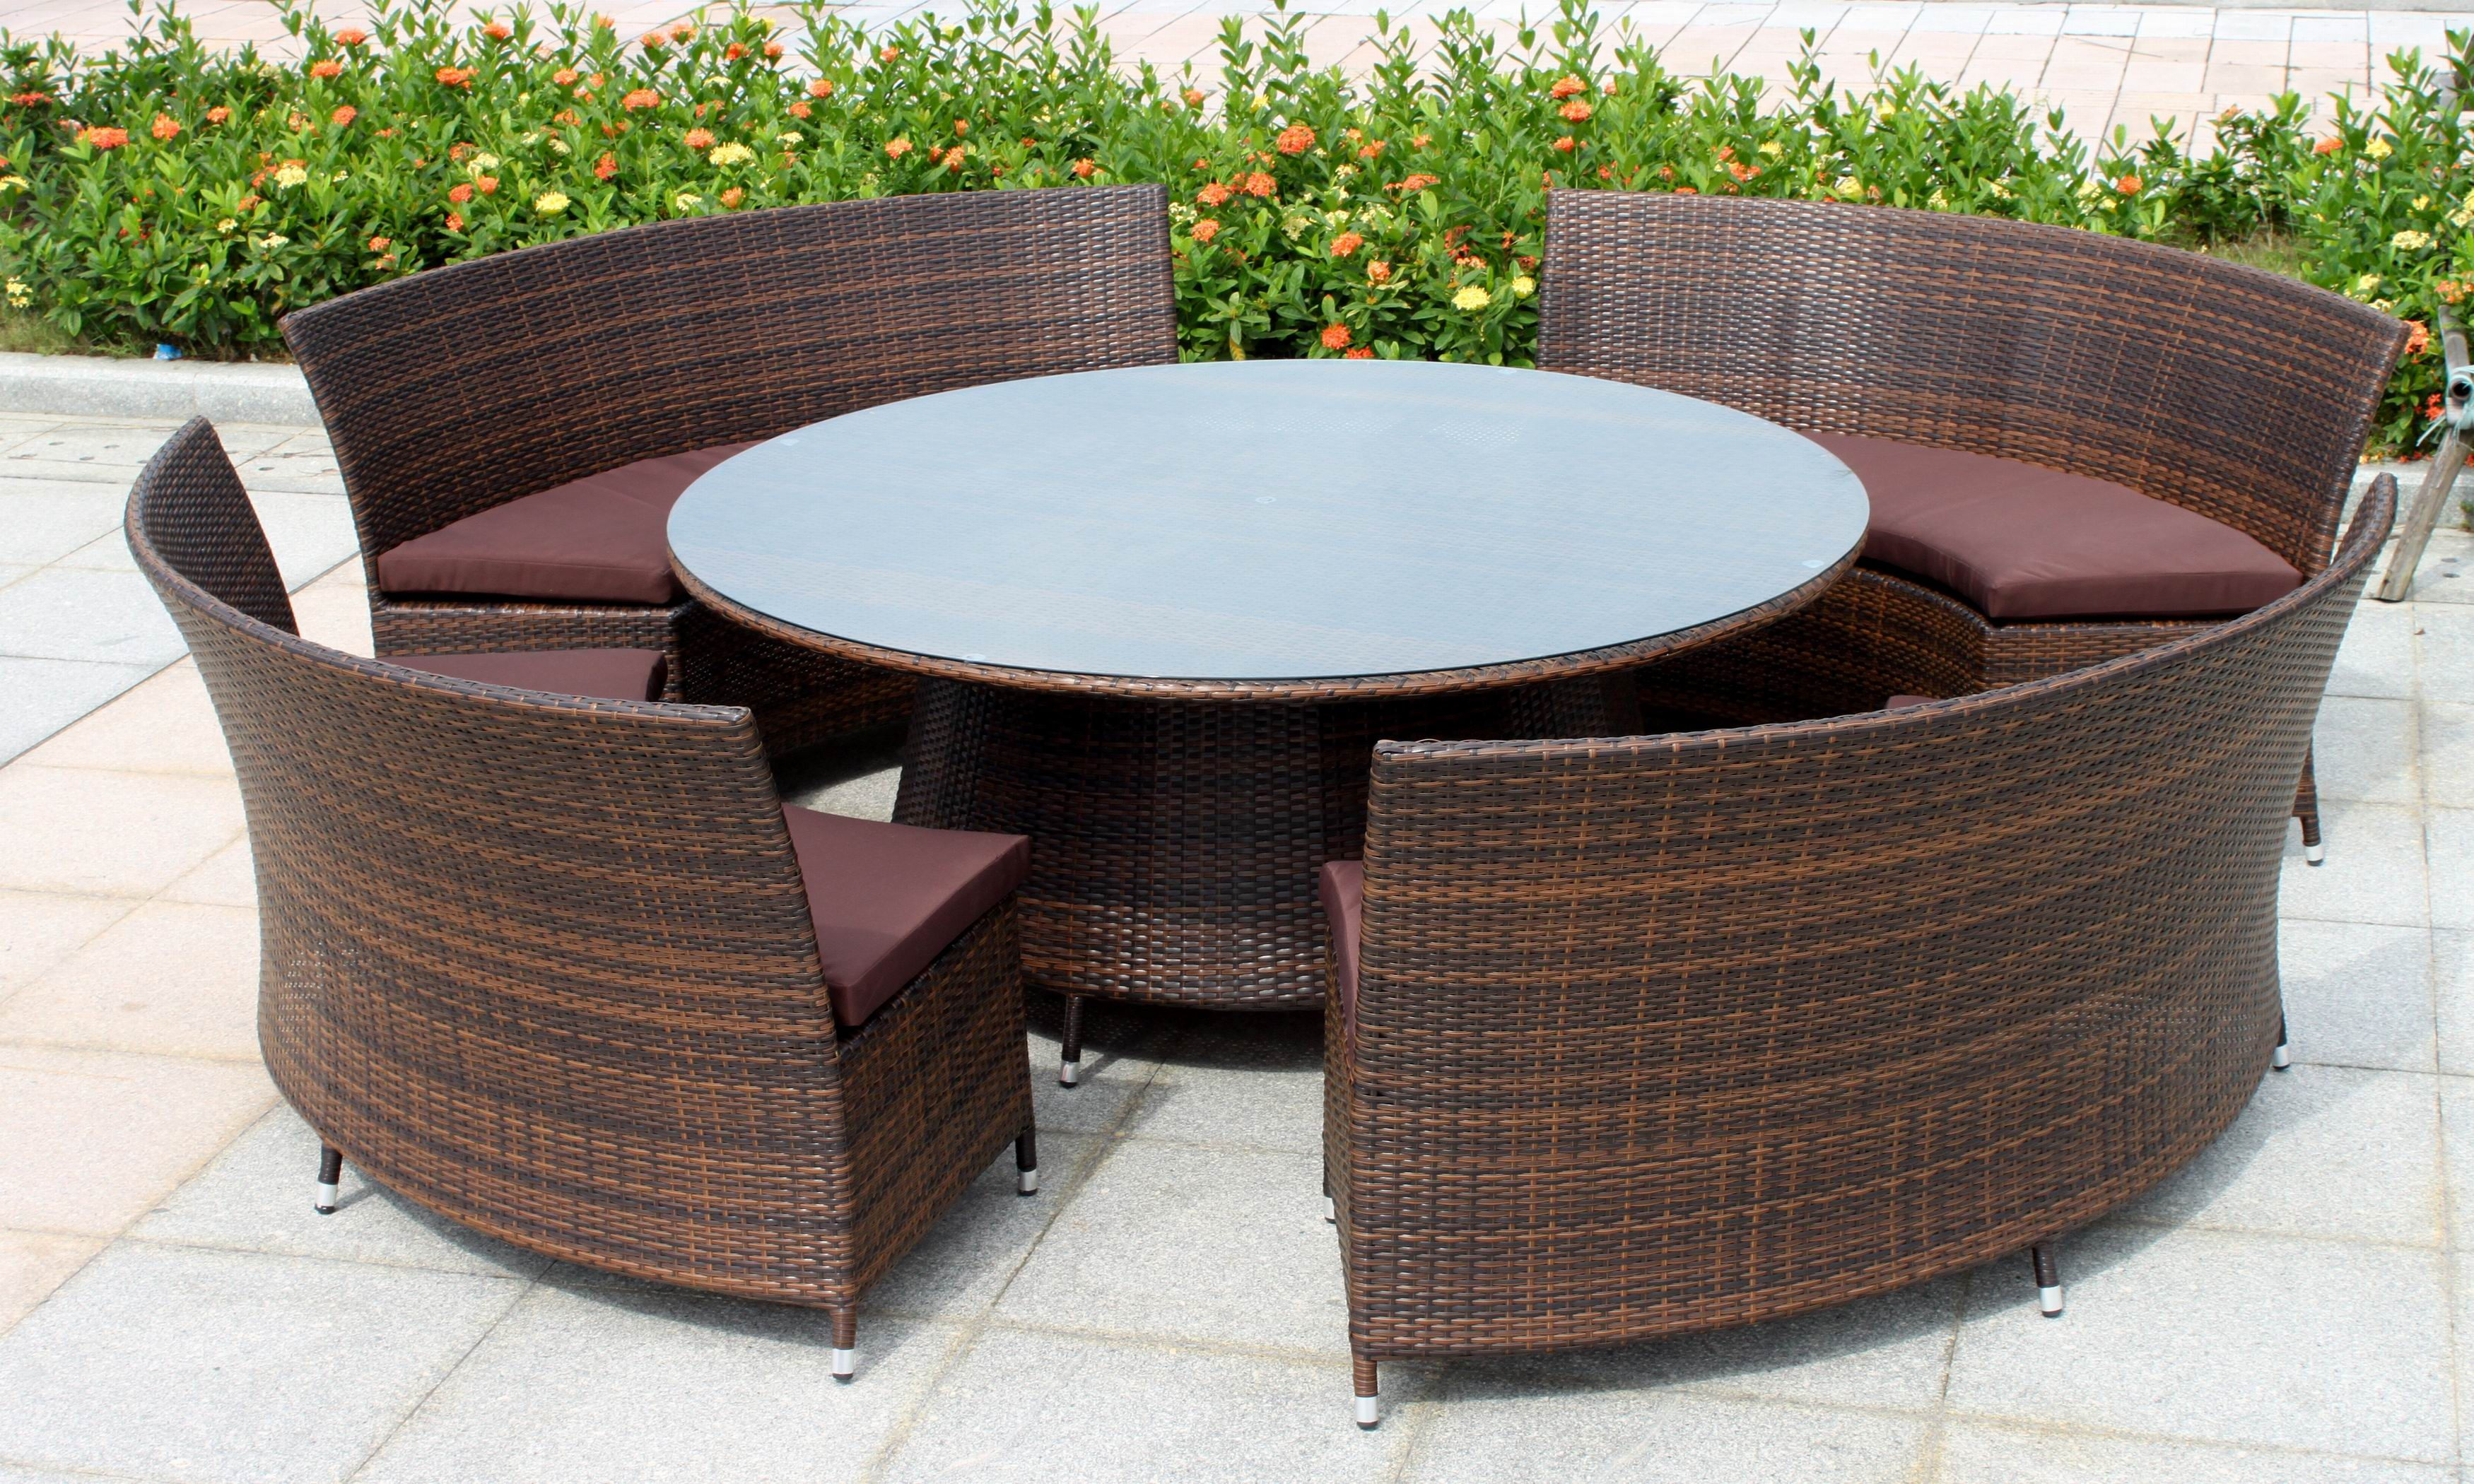 Stunning all weather rattan furniture view in gallery all weather rattan garden furniture jkfxwpj